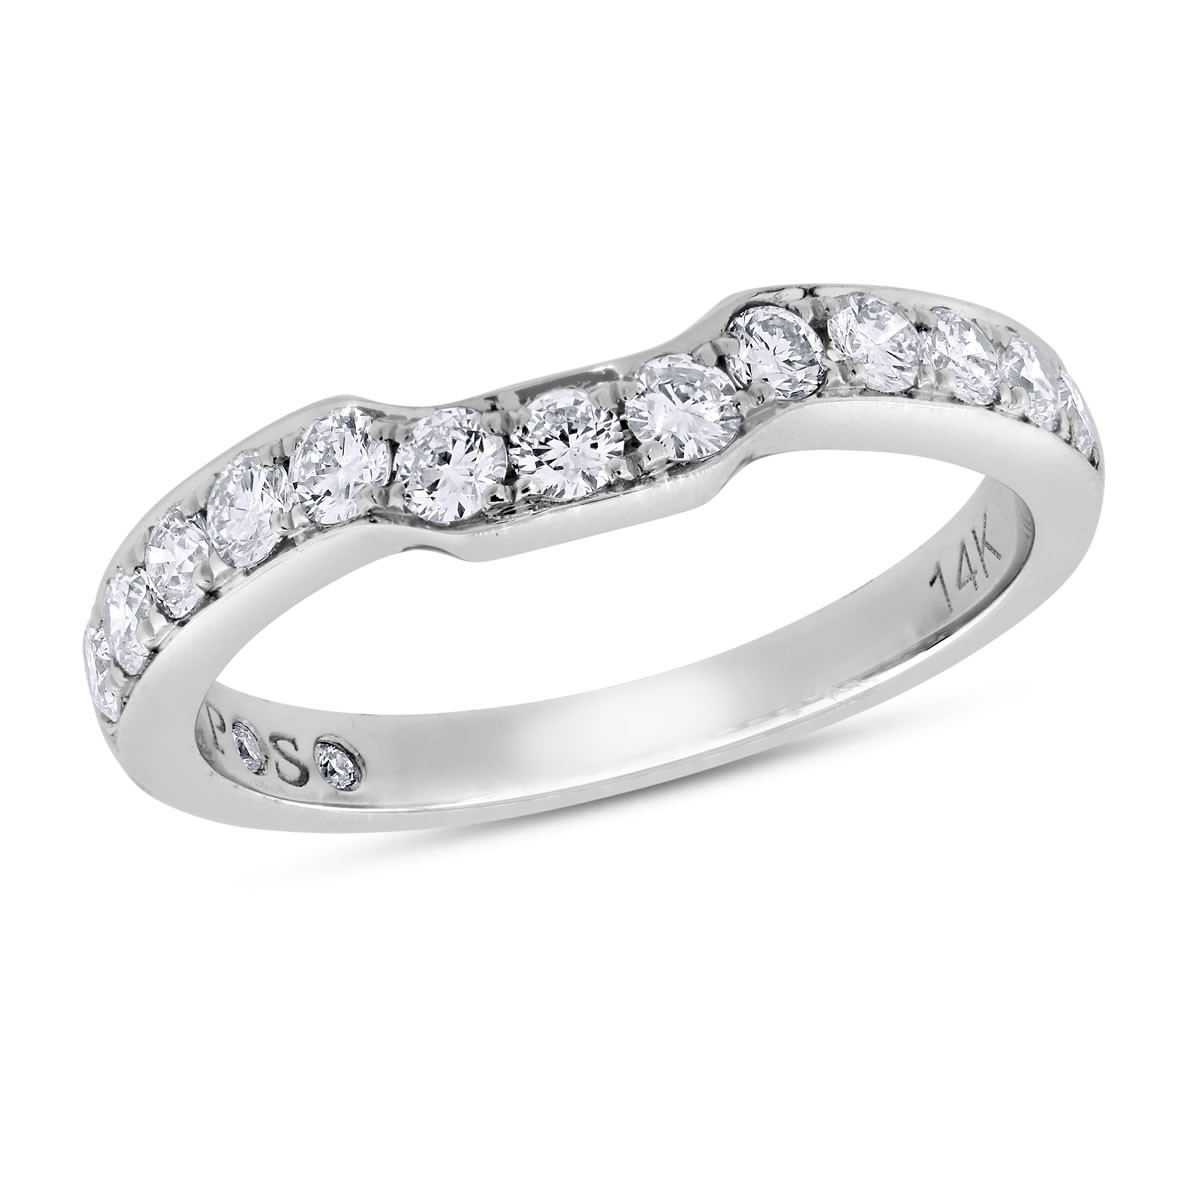 Passionstone, 1/2 Ctw Round Cut Diamond Wedding Band In 14K White Throughout Best And Newest Diamond Contour Wedding Bands In 14K White Gold (View 11 of 15)